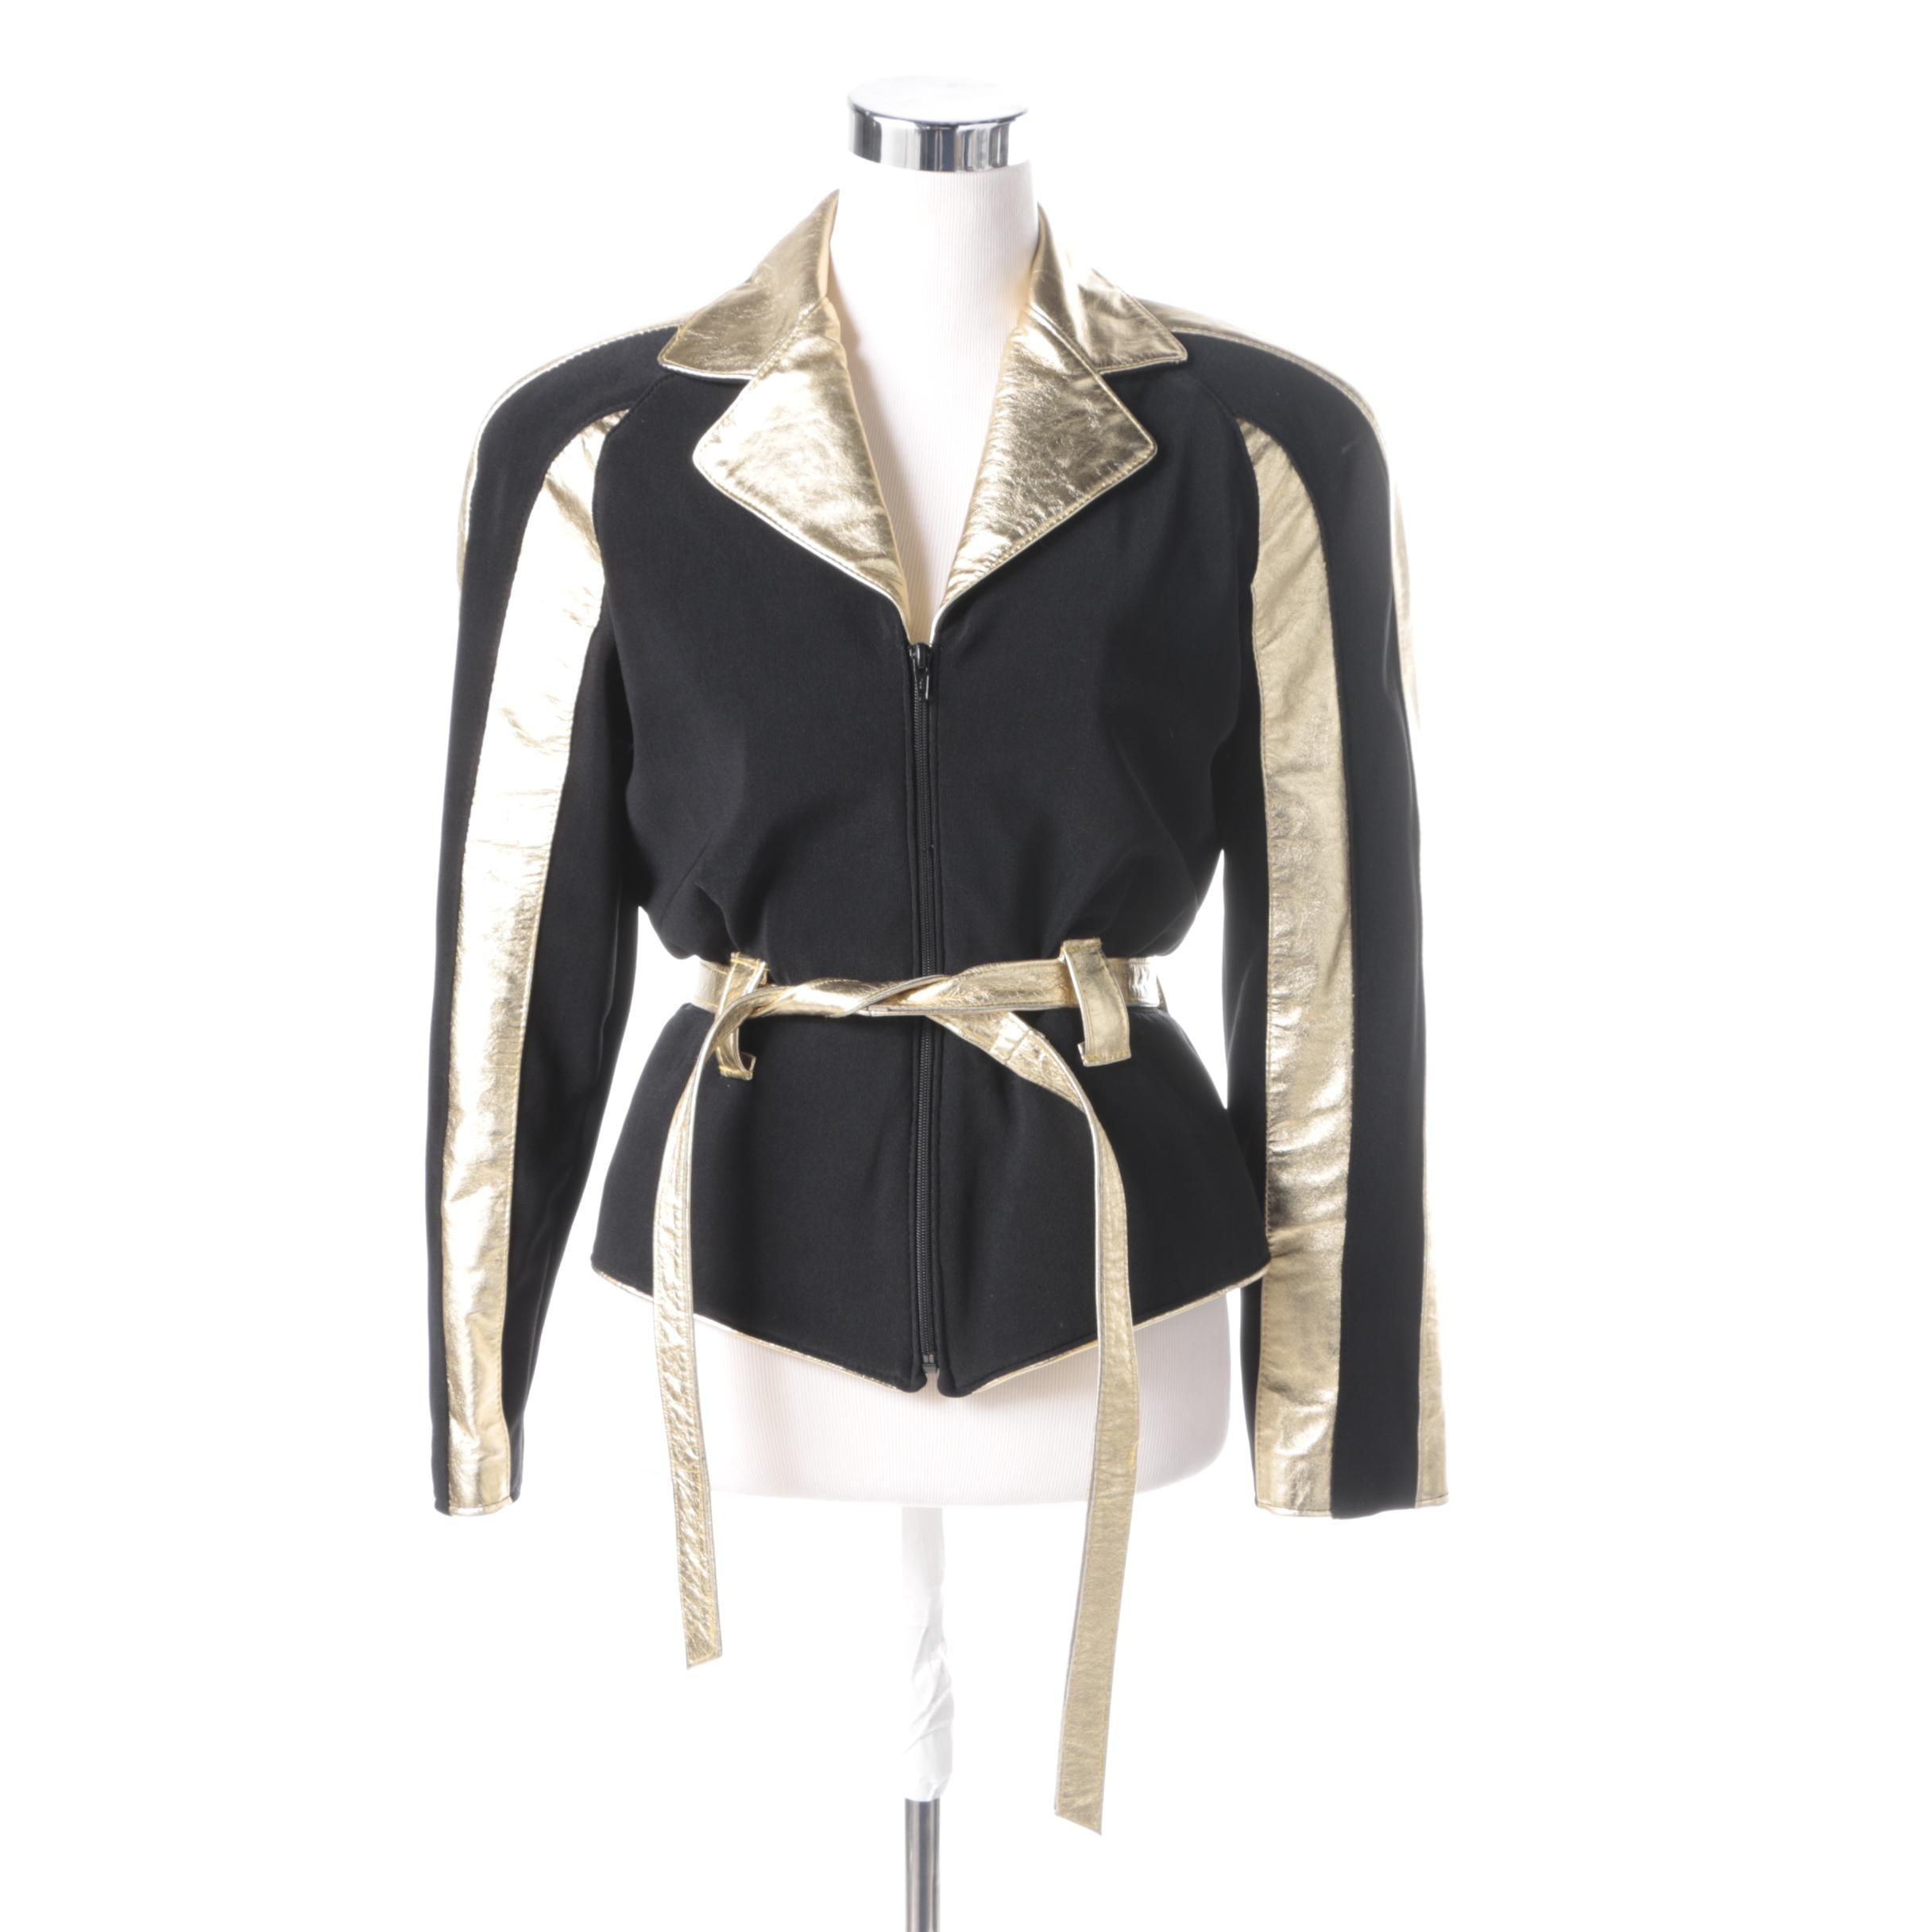 Women's Vintage Black and Gold Leather Jacket